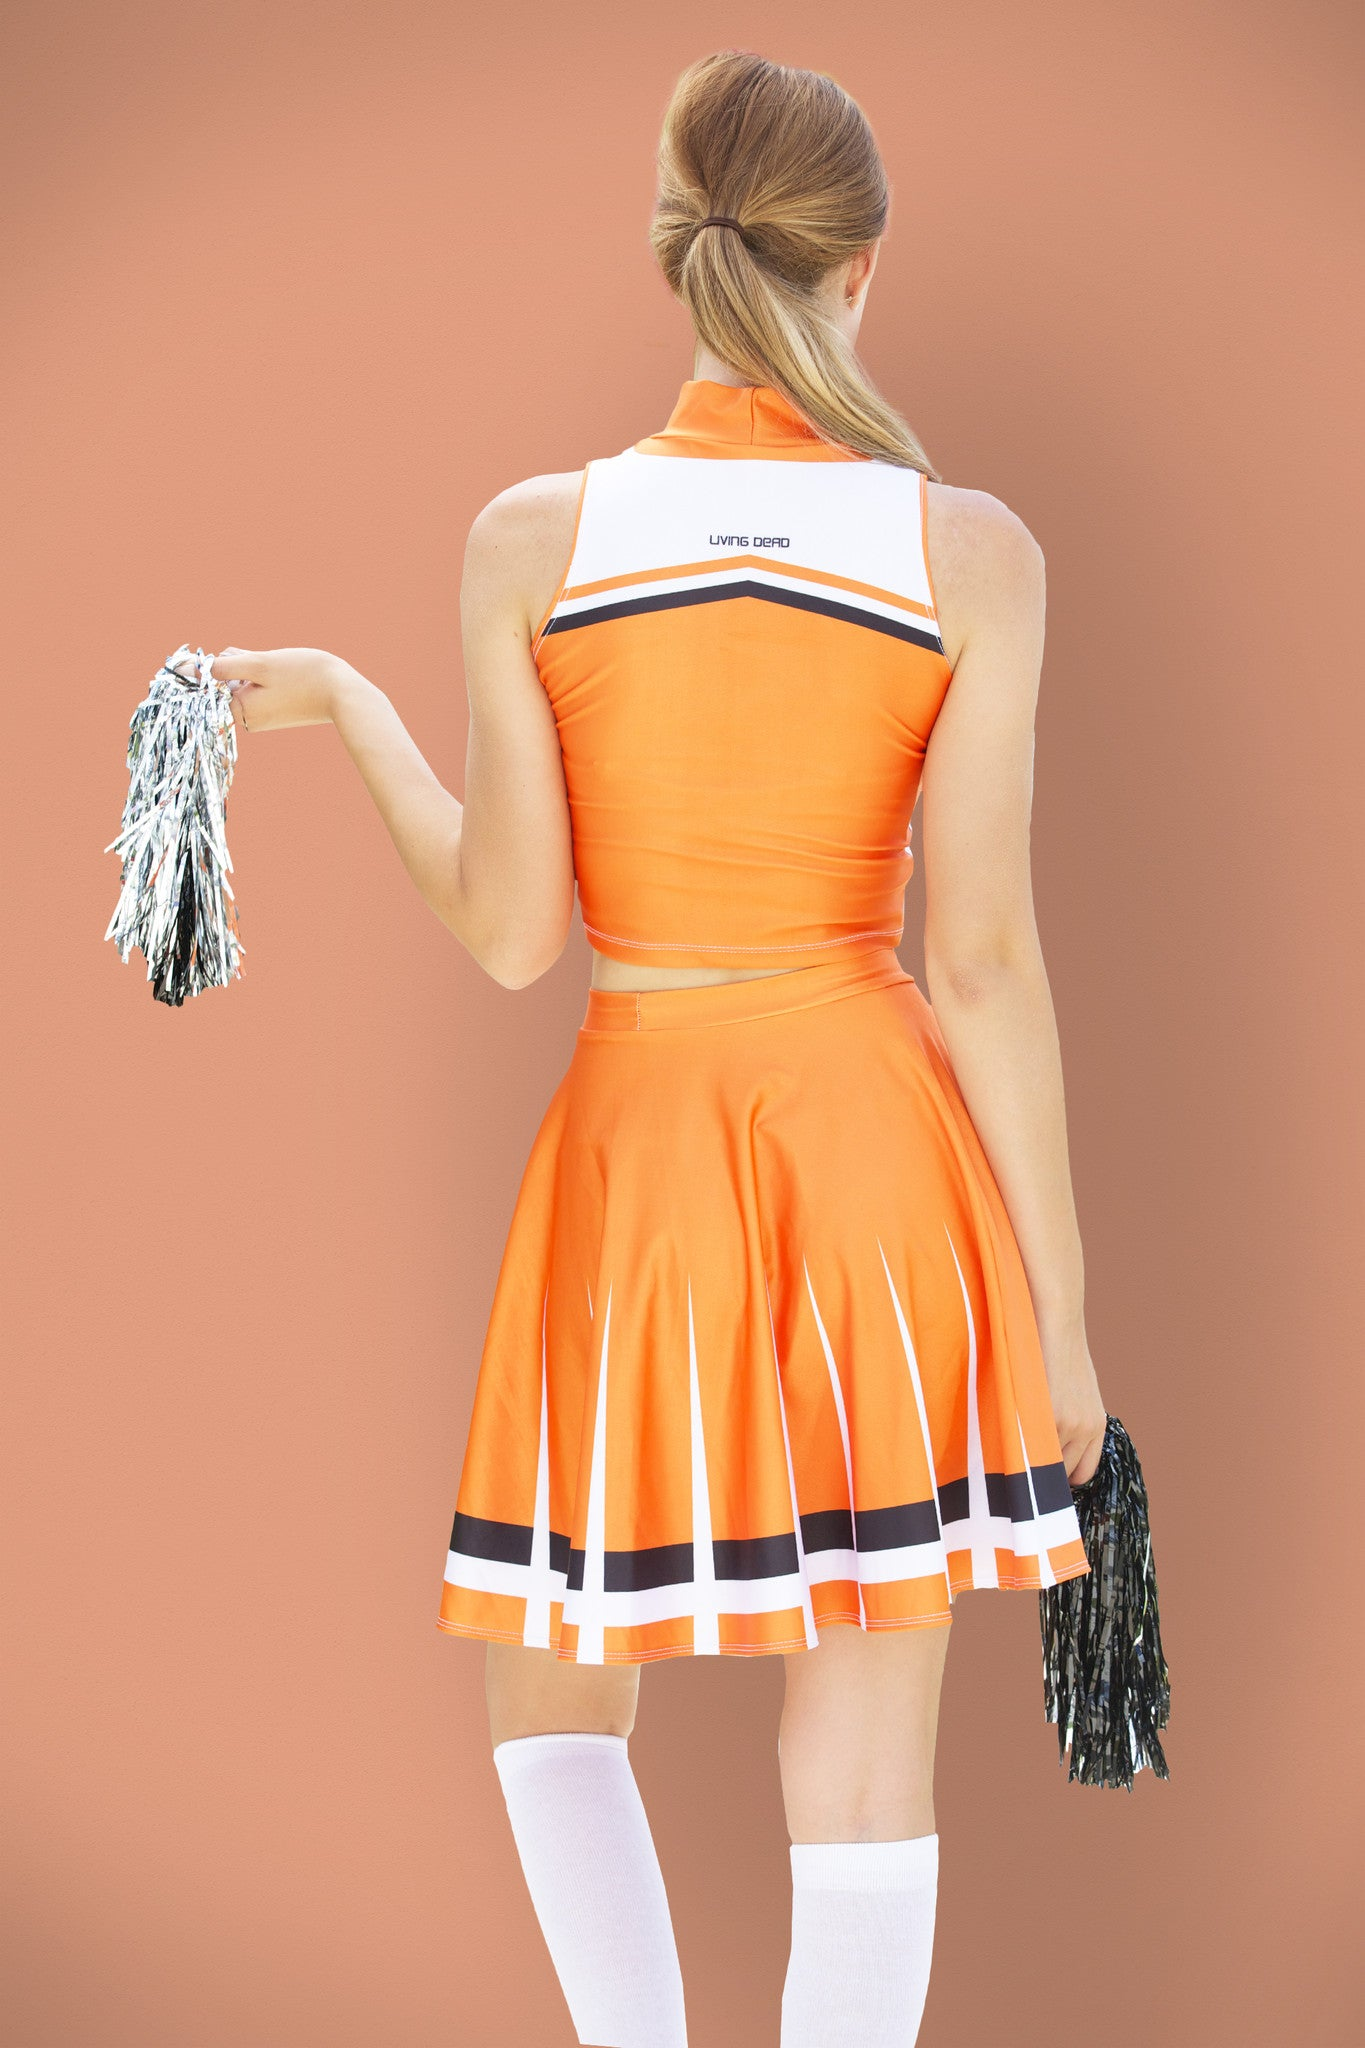 Sailor Venus Cosplay Cheerleader Uniform